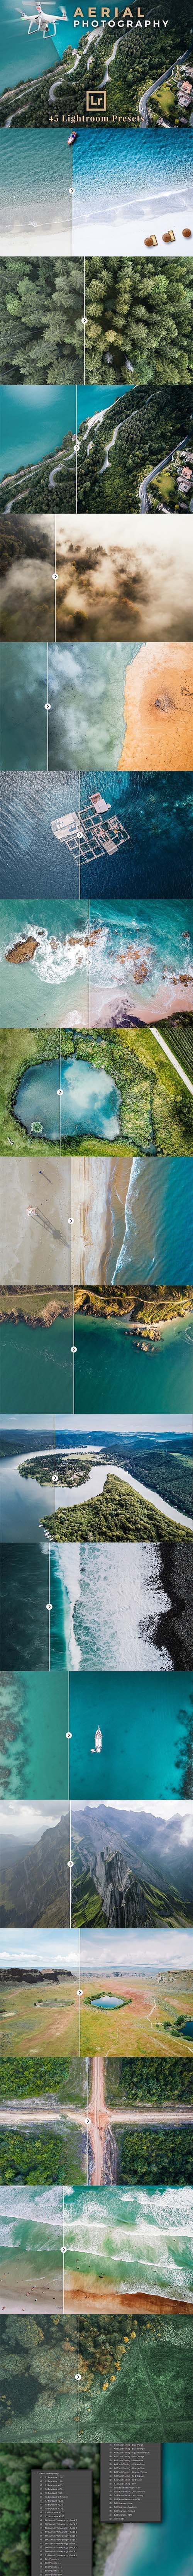 CreativeMarket - Aerial Photography Lightroom Presets 2534249